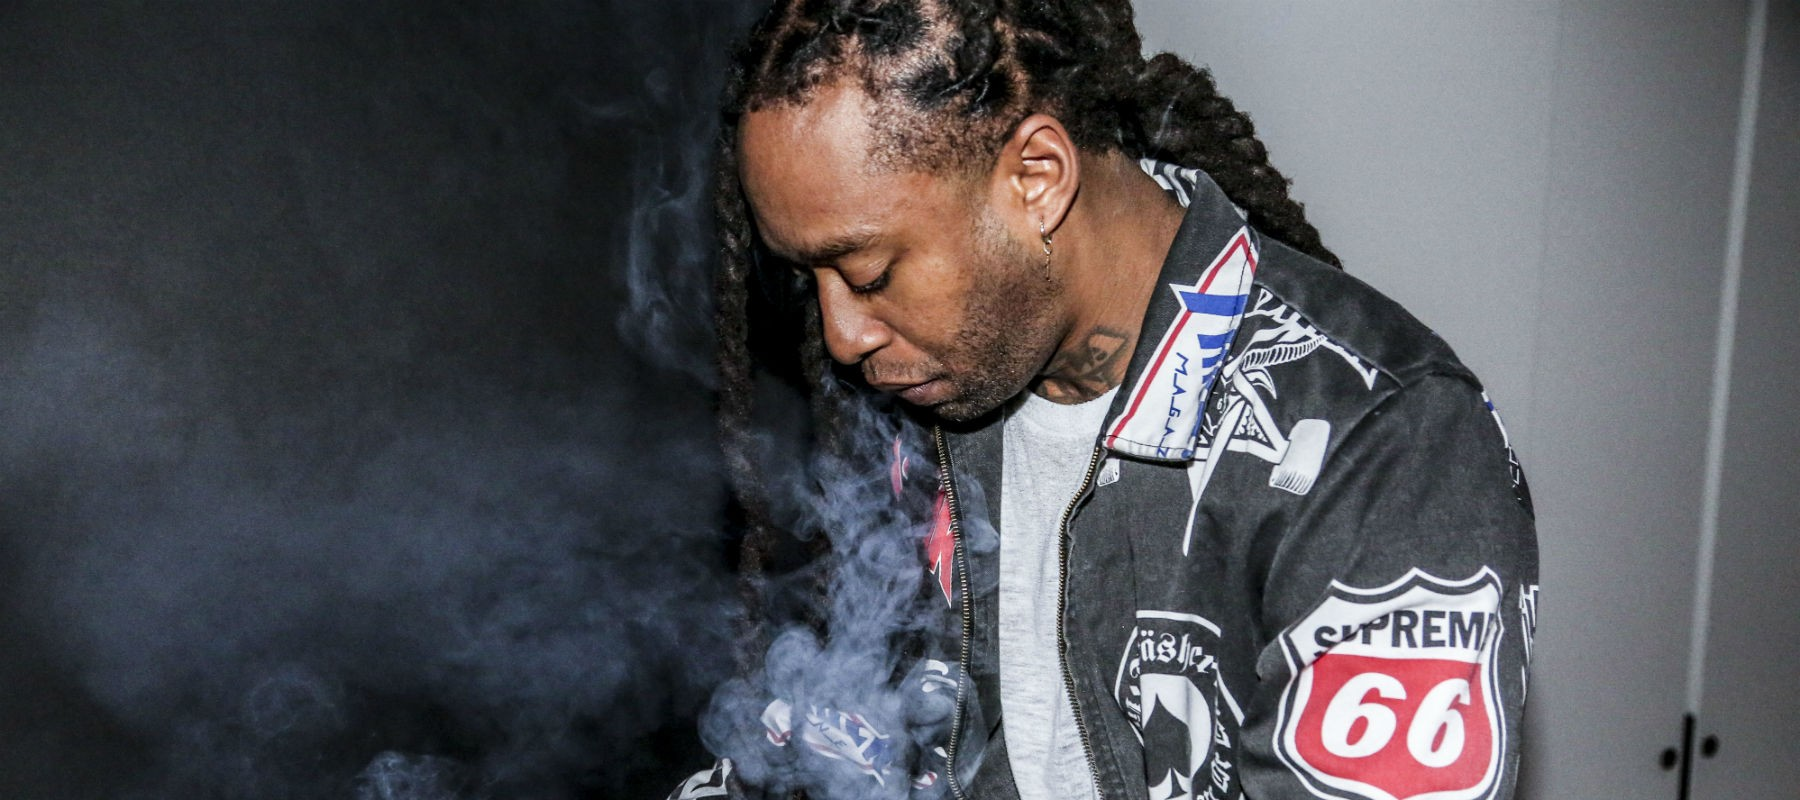 Ty dolla sign pictures hd full hd pictures - Ty dolla sign hd wallpaper ...